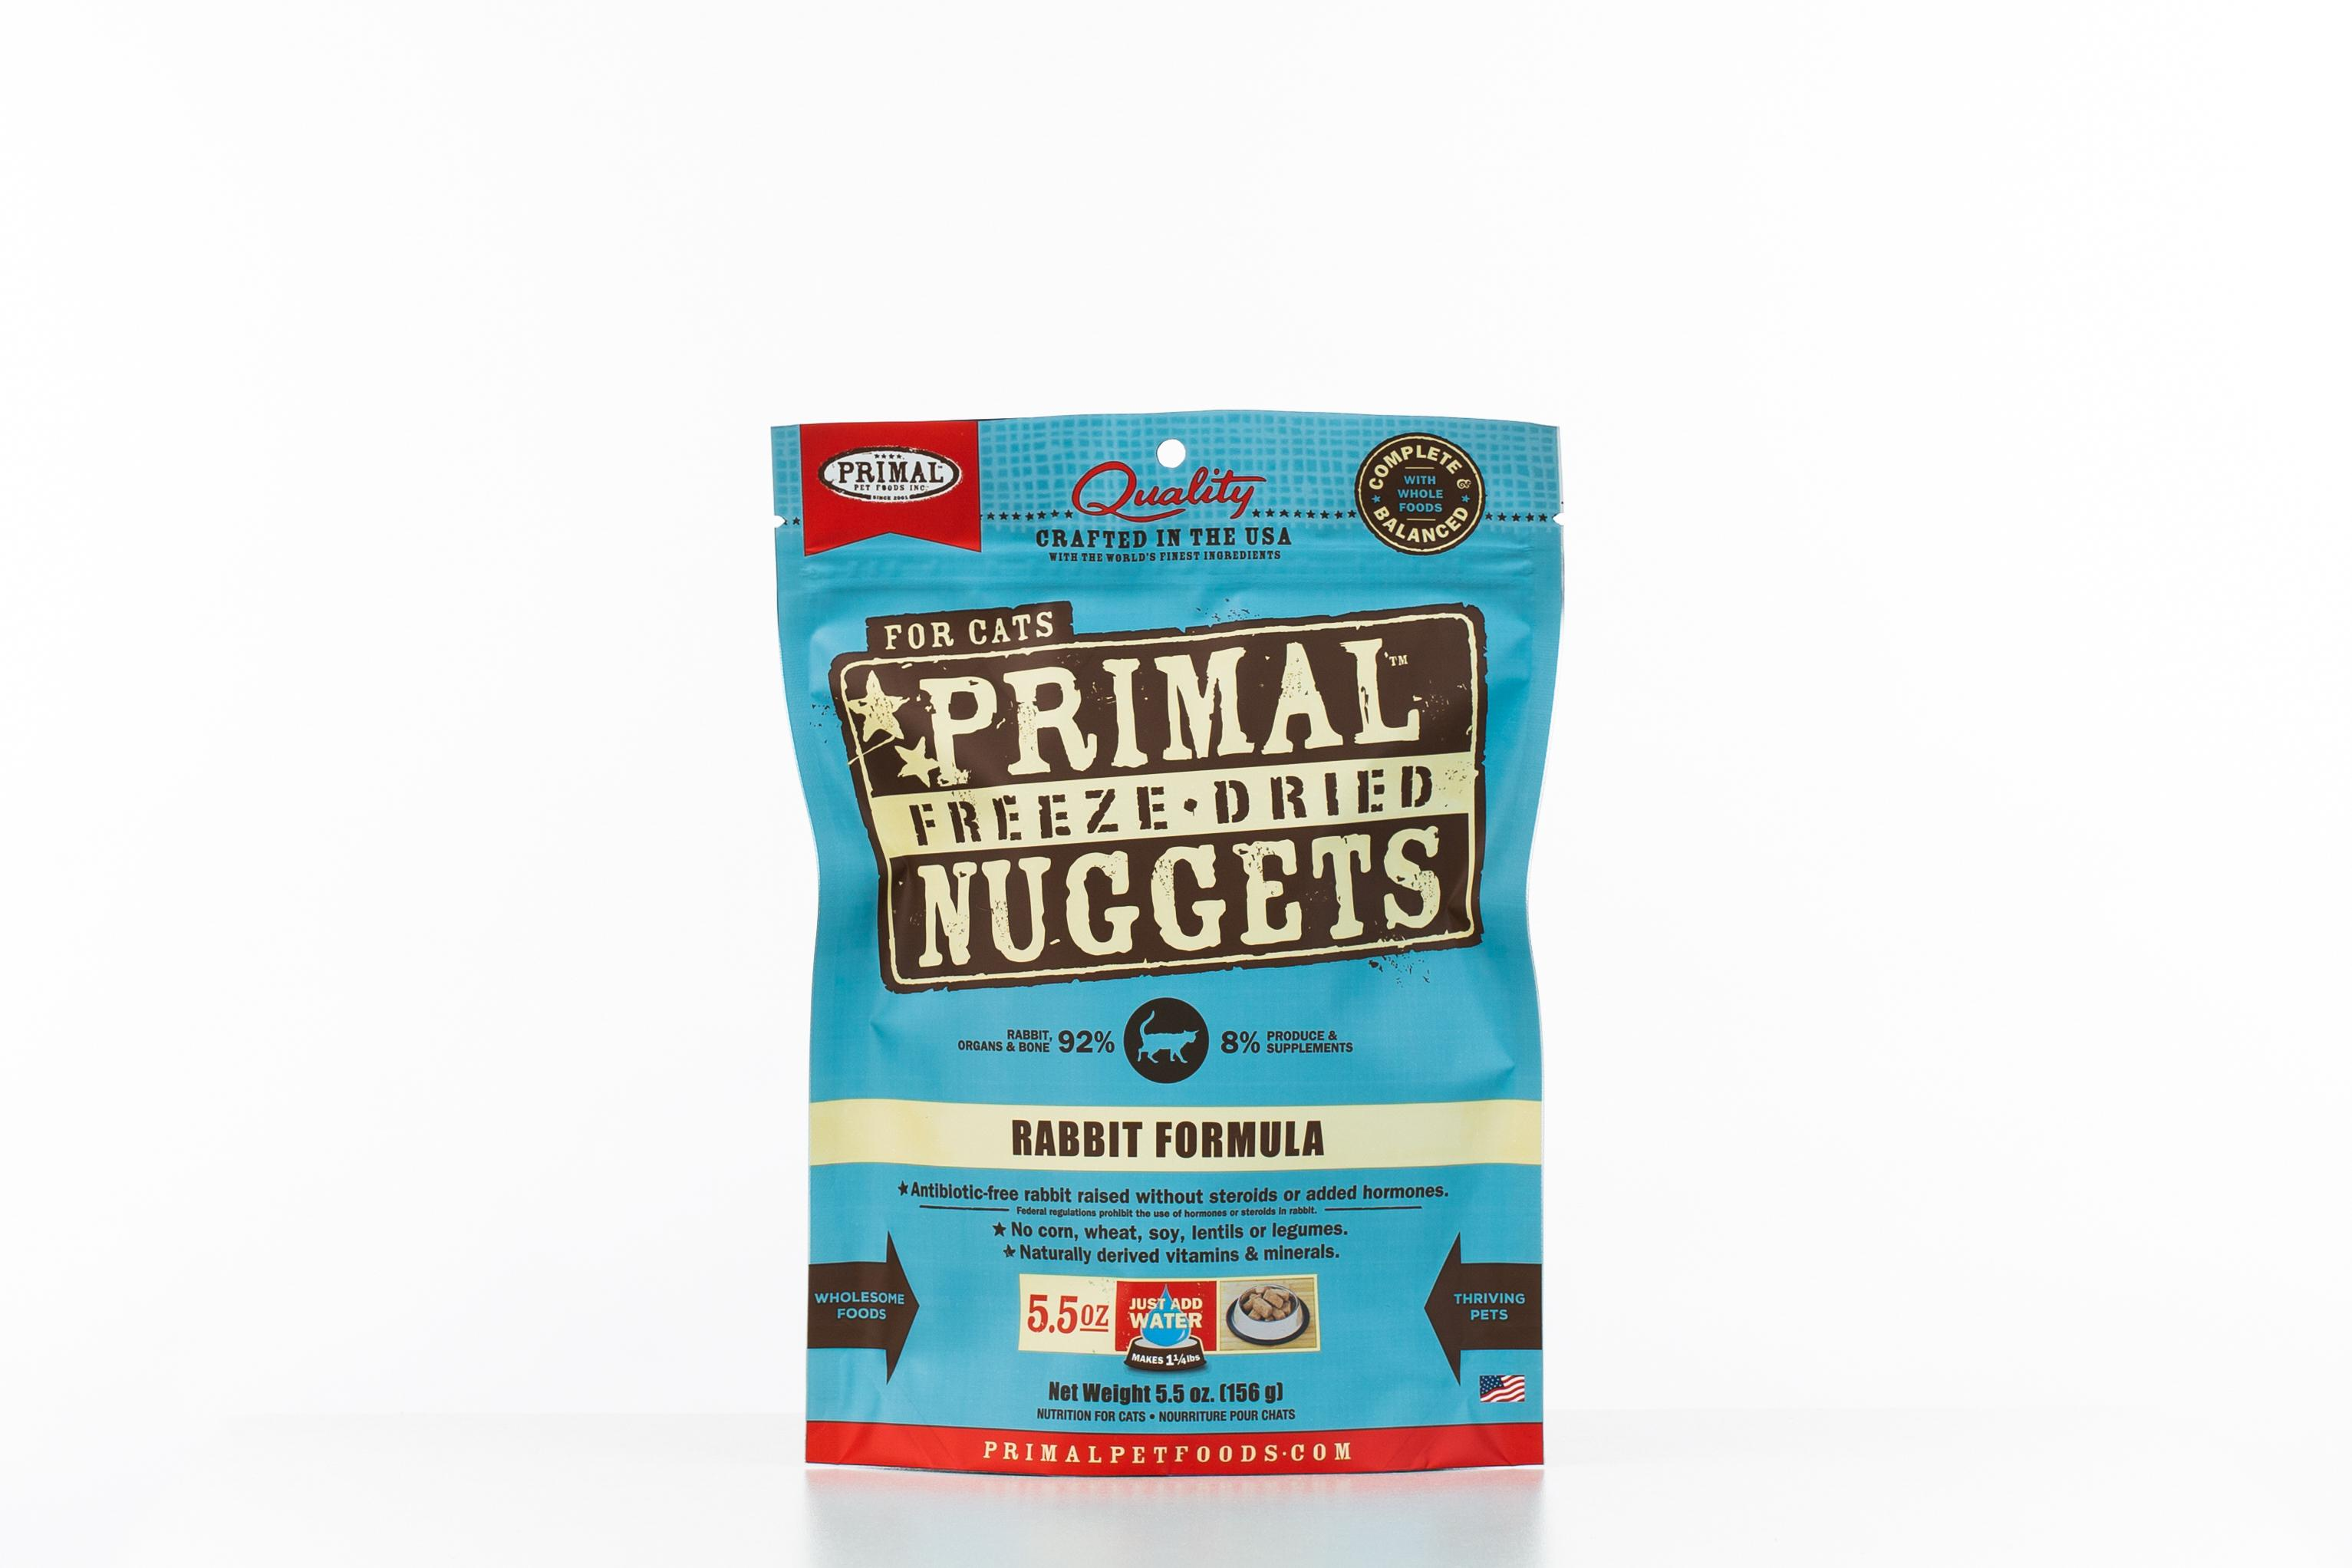 Primal Raw Freeze-Dried Nuggets Rabbit Formula Cat Food, 5.5-oz bag